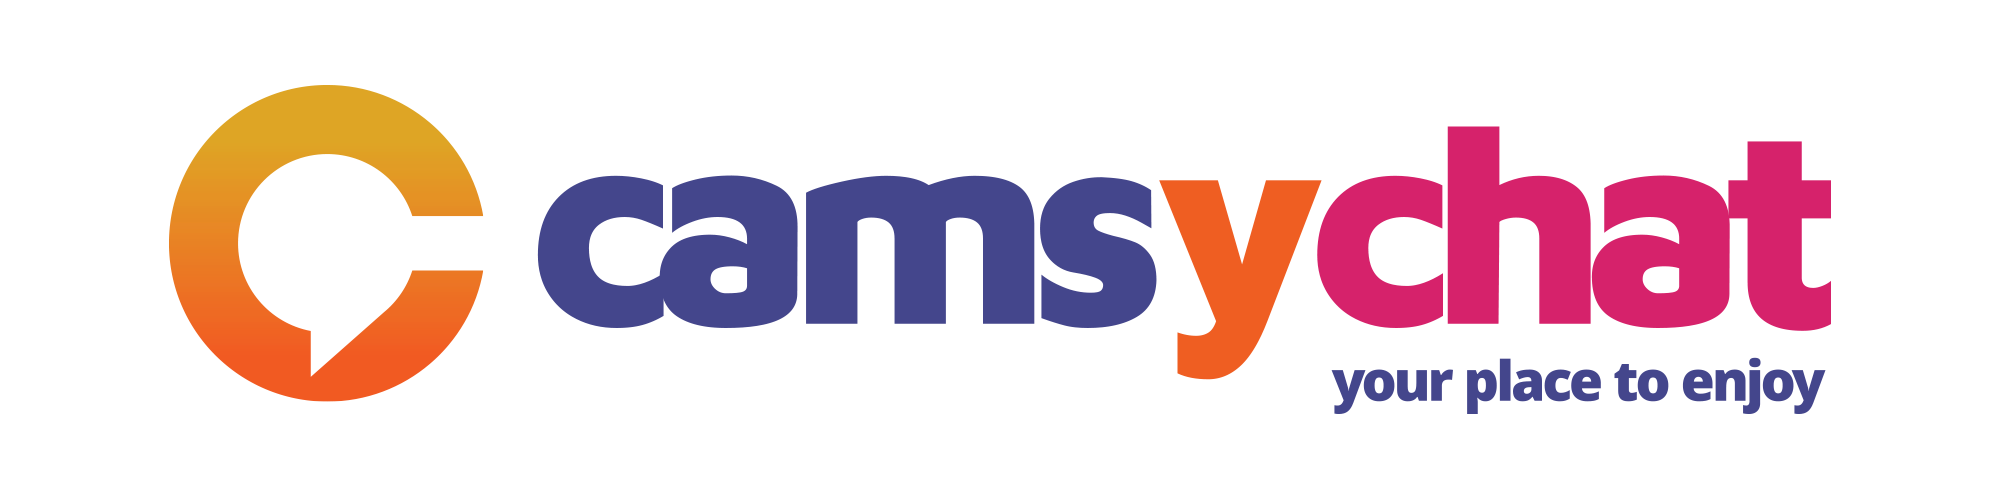 Camsychat